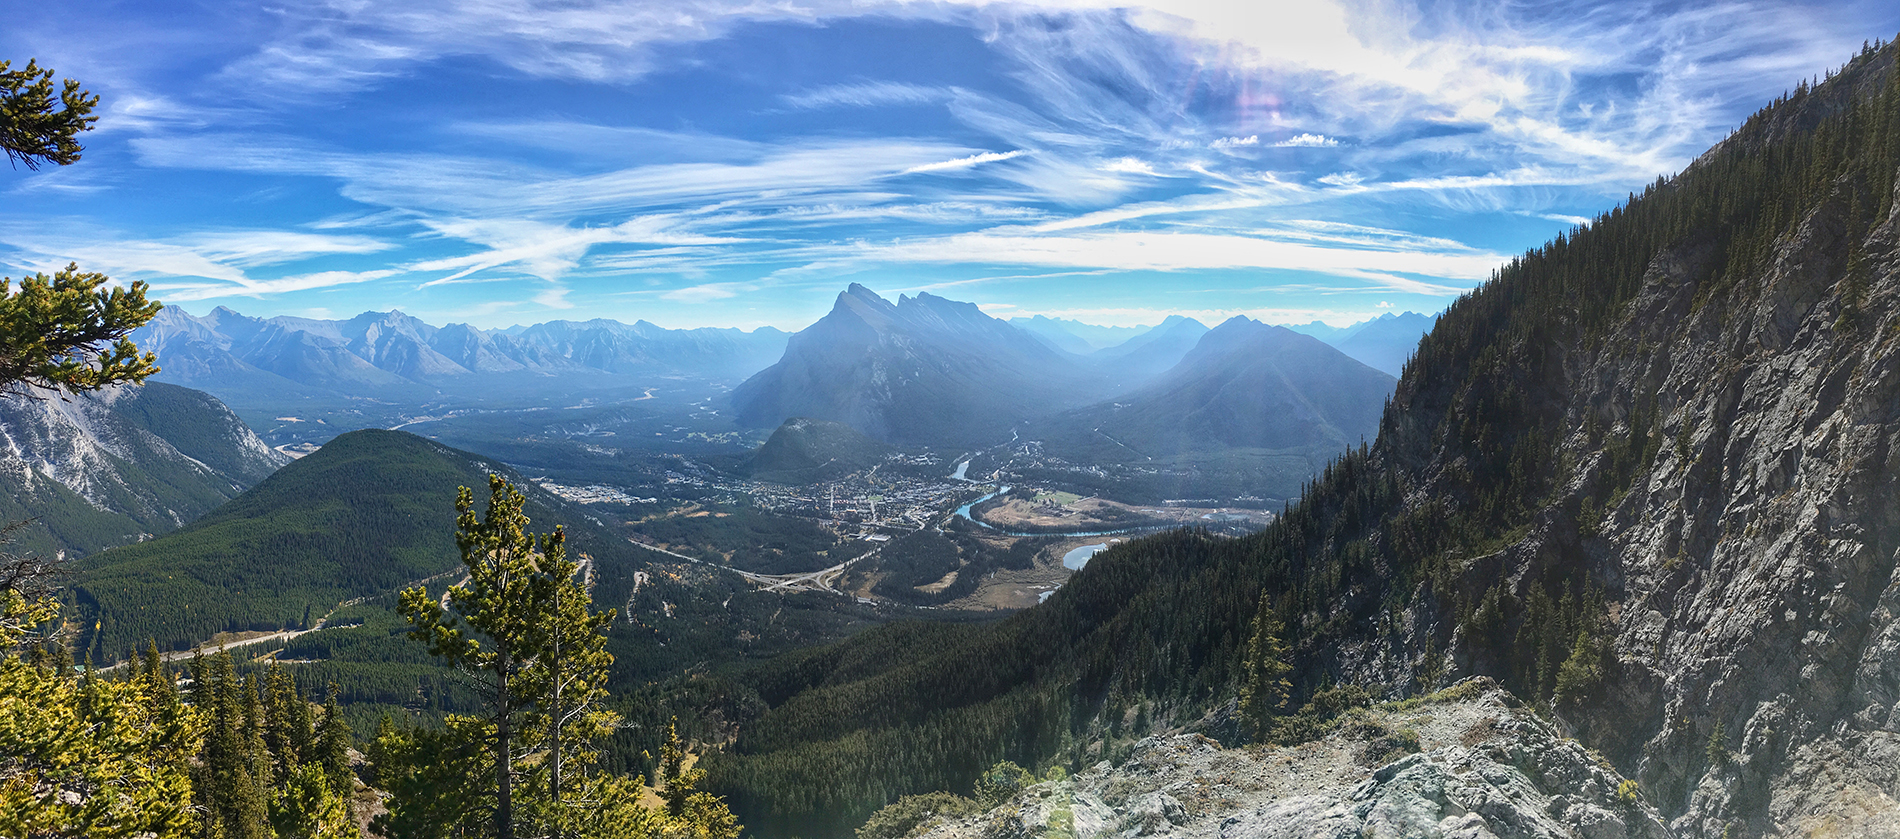 Otherworldy panoramic views in Banff National Park